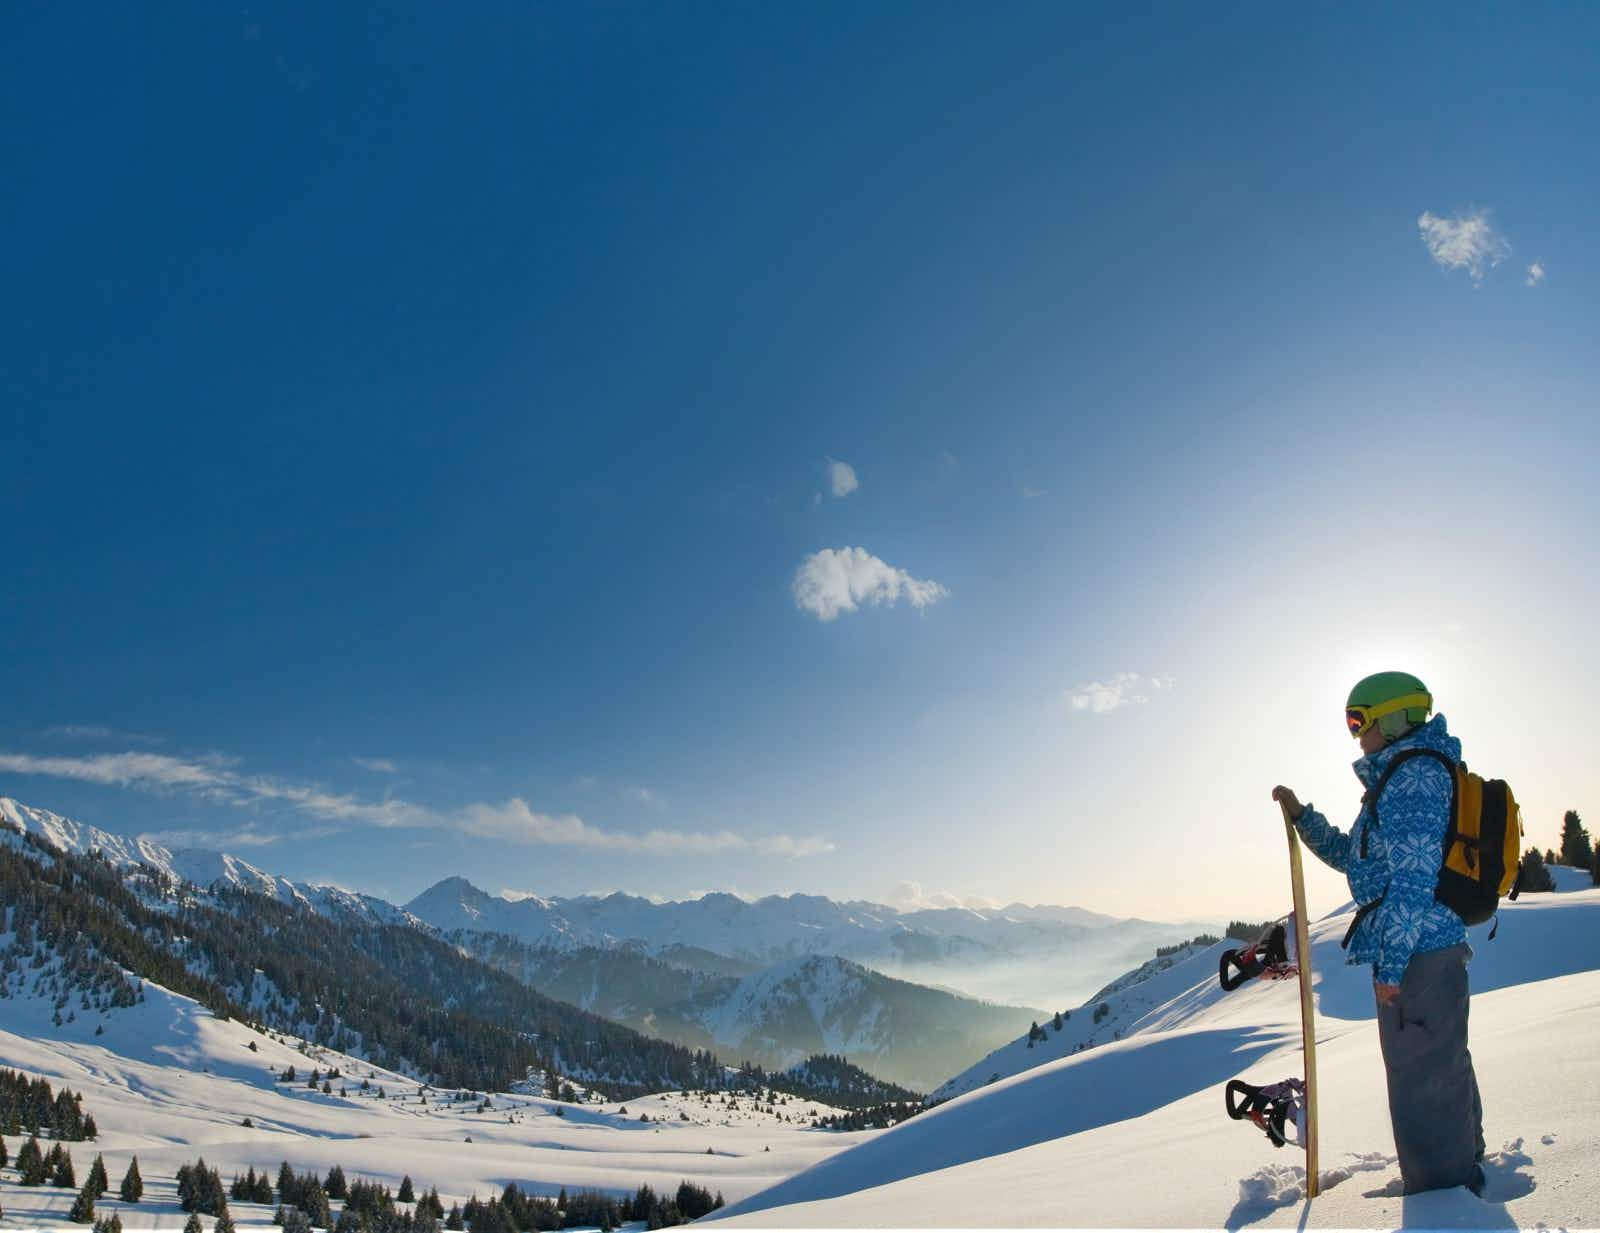 Skiing in Switzerland: how to pick the perfect slope